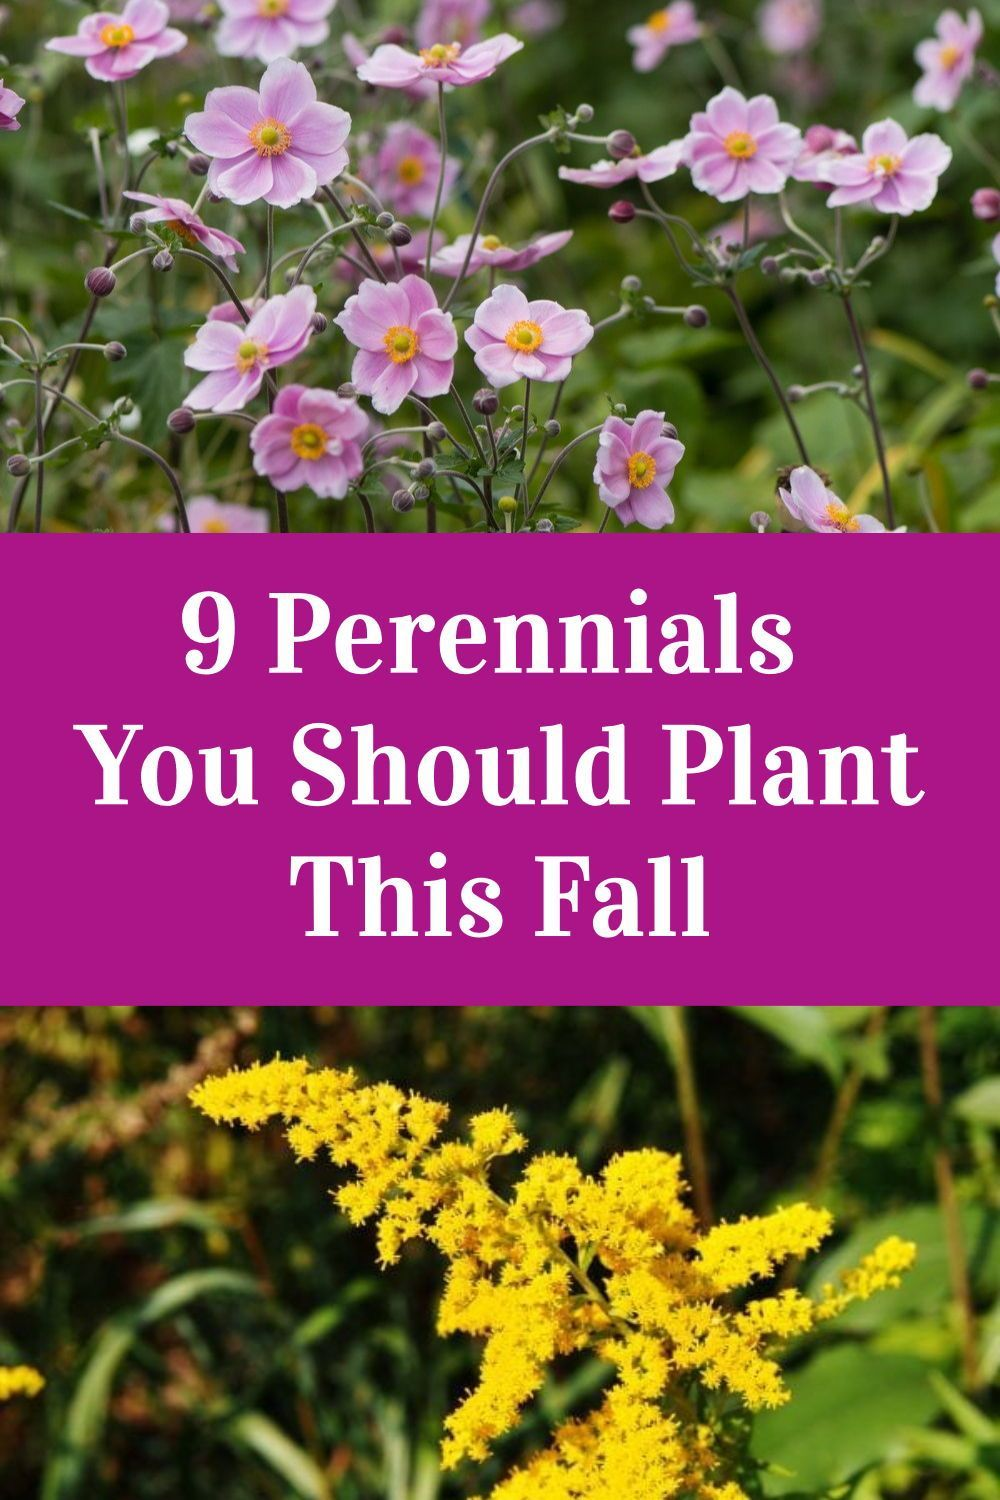 9 Perennials You Should Plant This Fall In 2020 Plants Fall Perennials Perennials